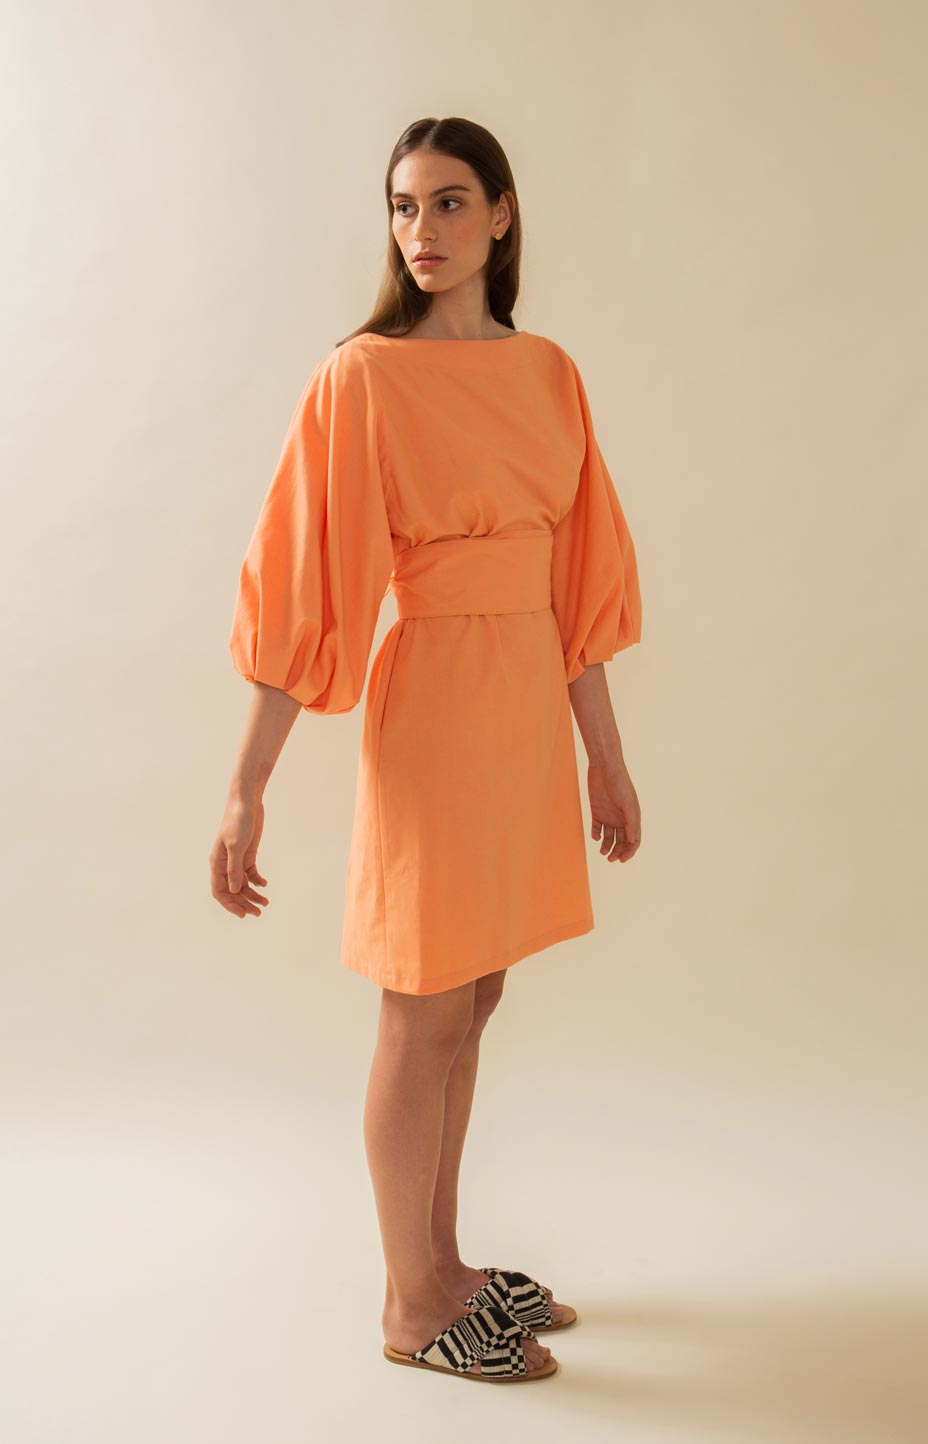 Coral dress with bag sleeves, recycled material. Pause Design